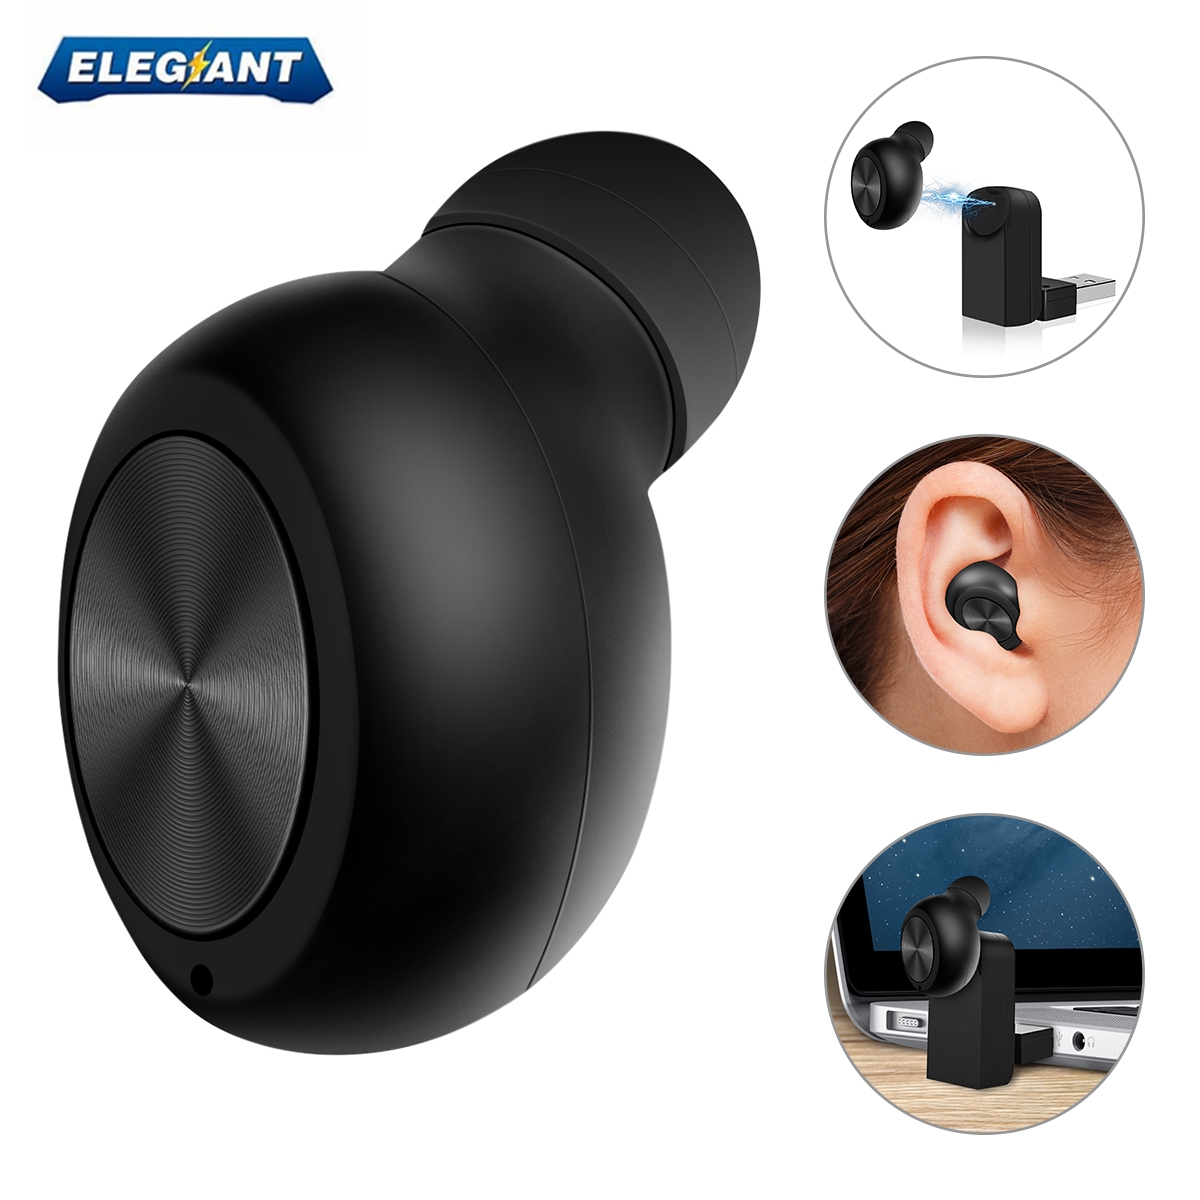 ELEGIANT Wireless bluetooth Earbuds Headphones Magnetic USB Charging Mini In-ear Headset Earbud Earphone Hands-free With Noise Reduction Built-in Mic for Microphone Office Business